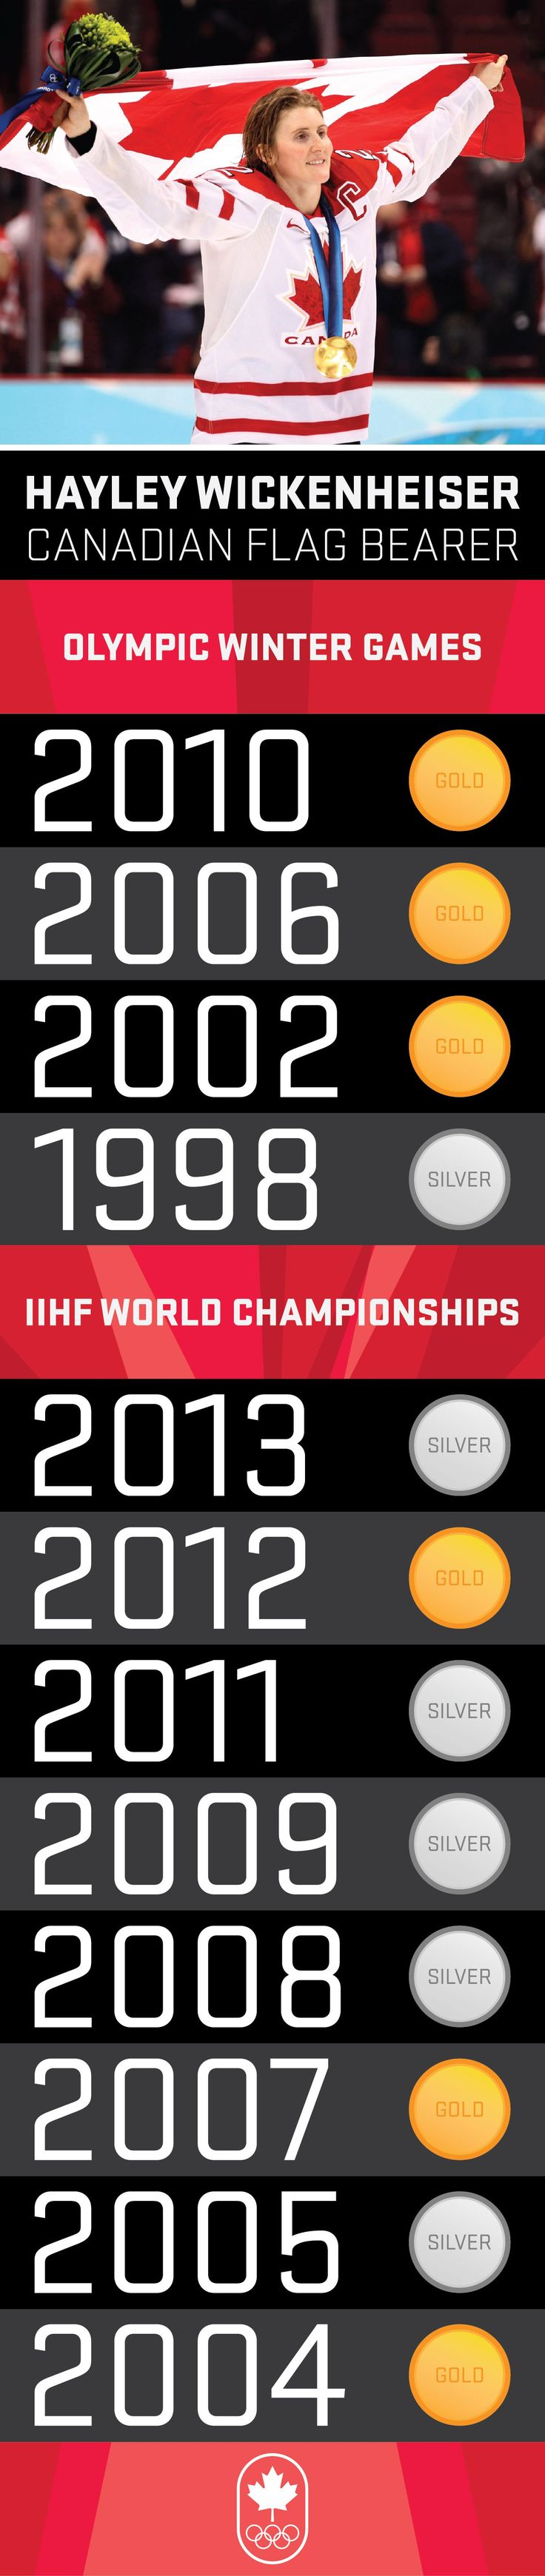 Sochi 2014 - Canadian Olympic Team Flag Bearer - Hayley Wickenheiser Infographic